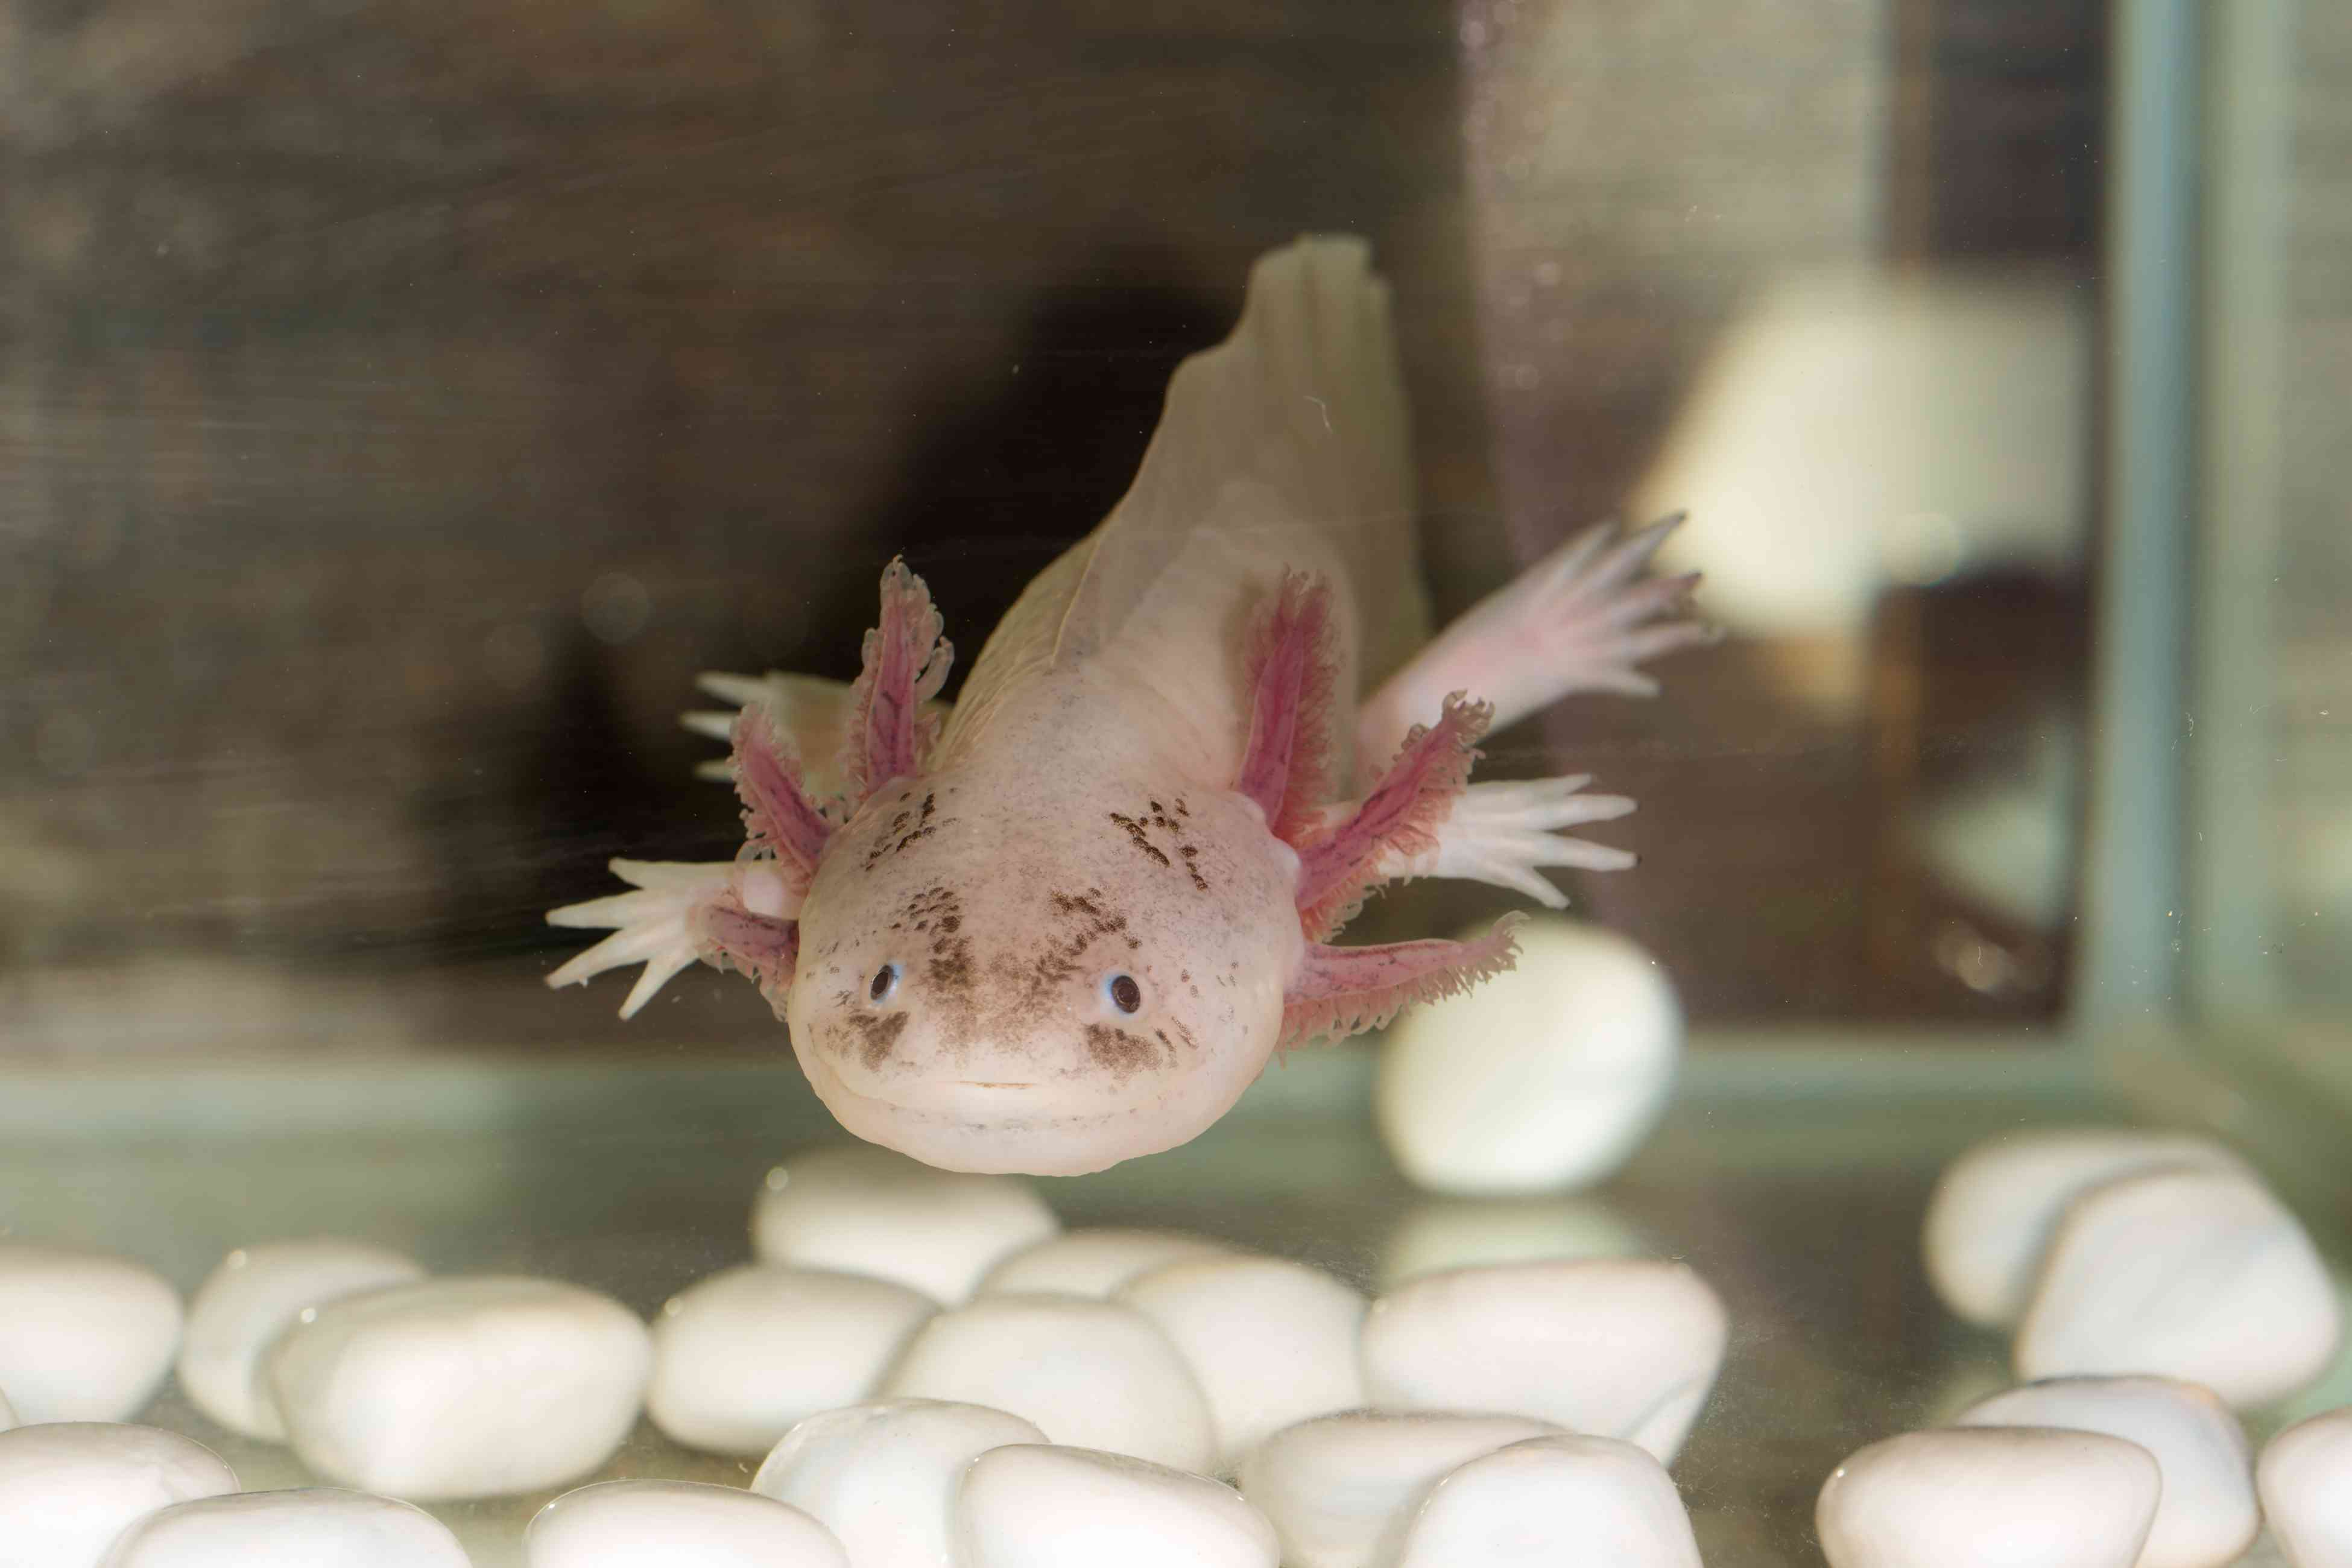 An axolotl will eat anything small enough to fit into its mouth.